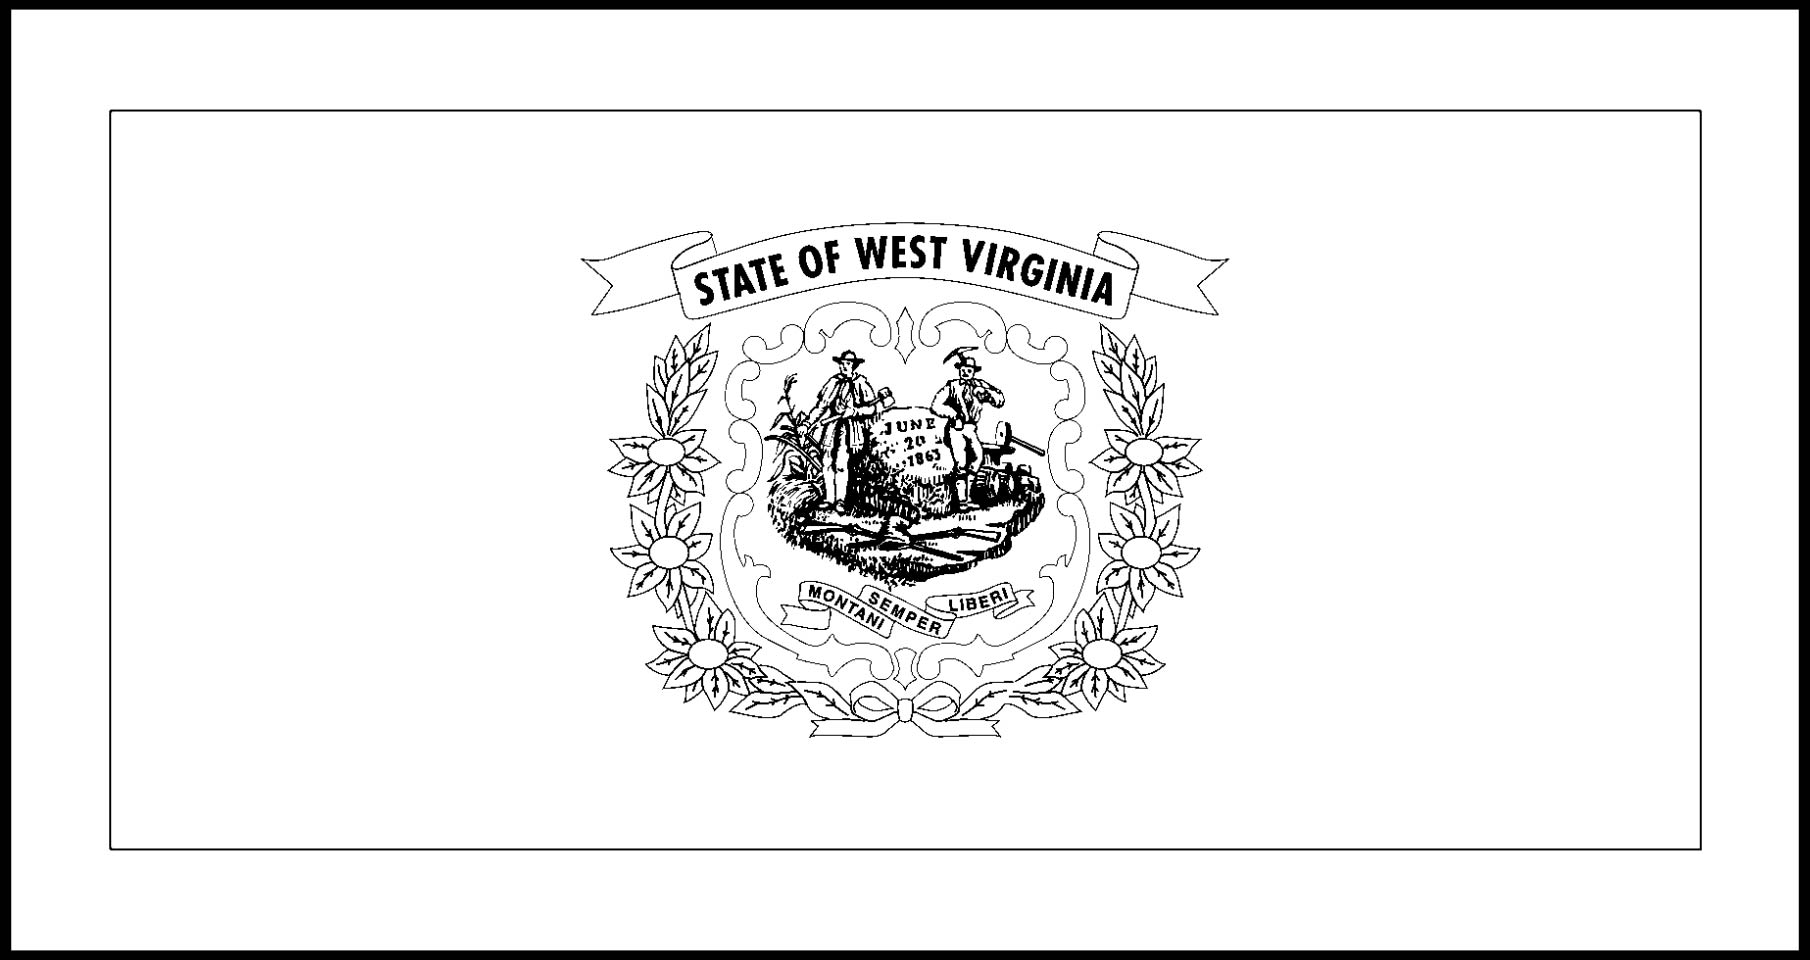 virginia flag coloring page virginia flags emblems symbols outline maps coloring flag page virginia